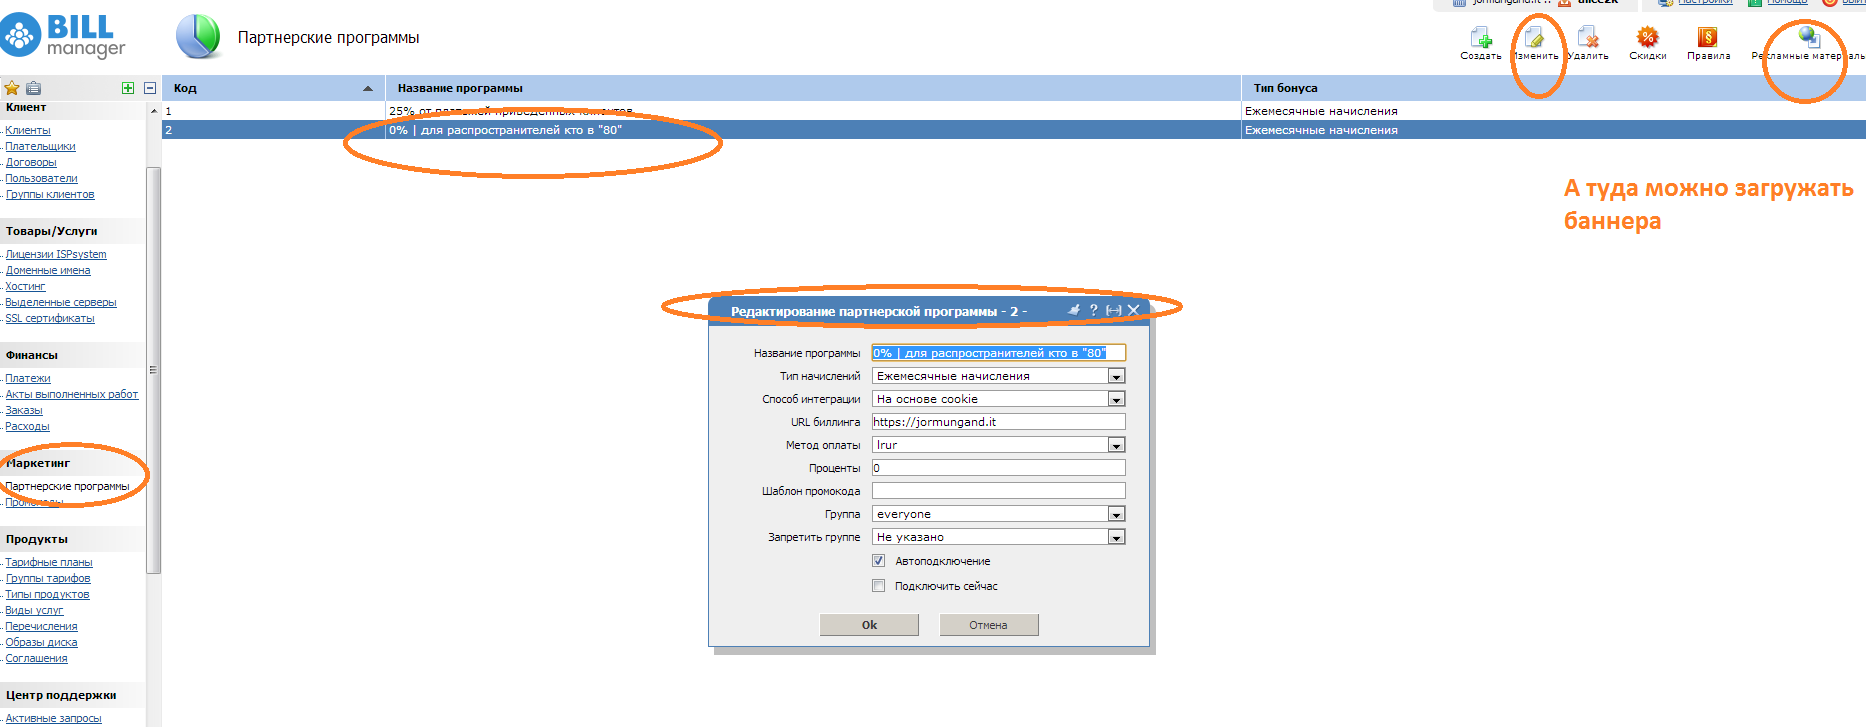 billmanager nulled